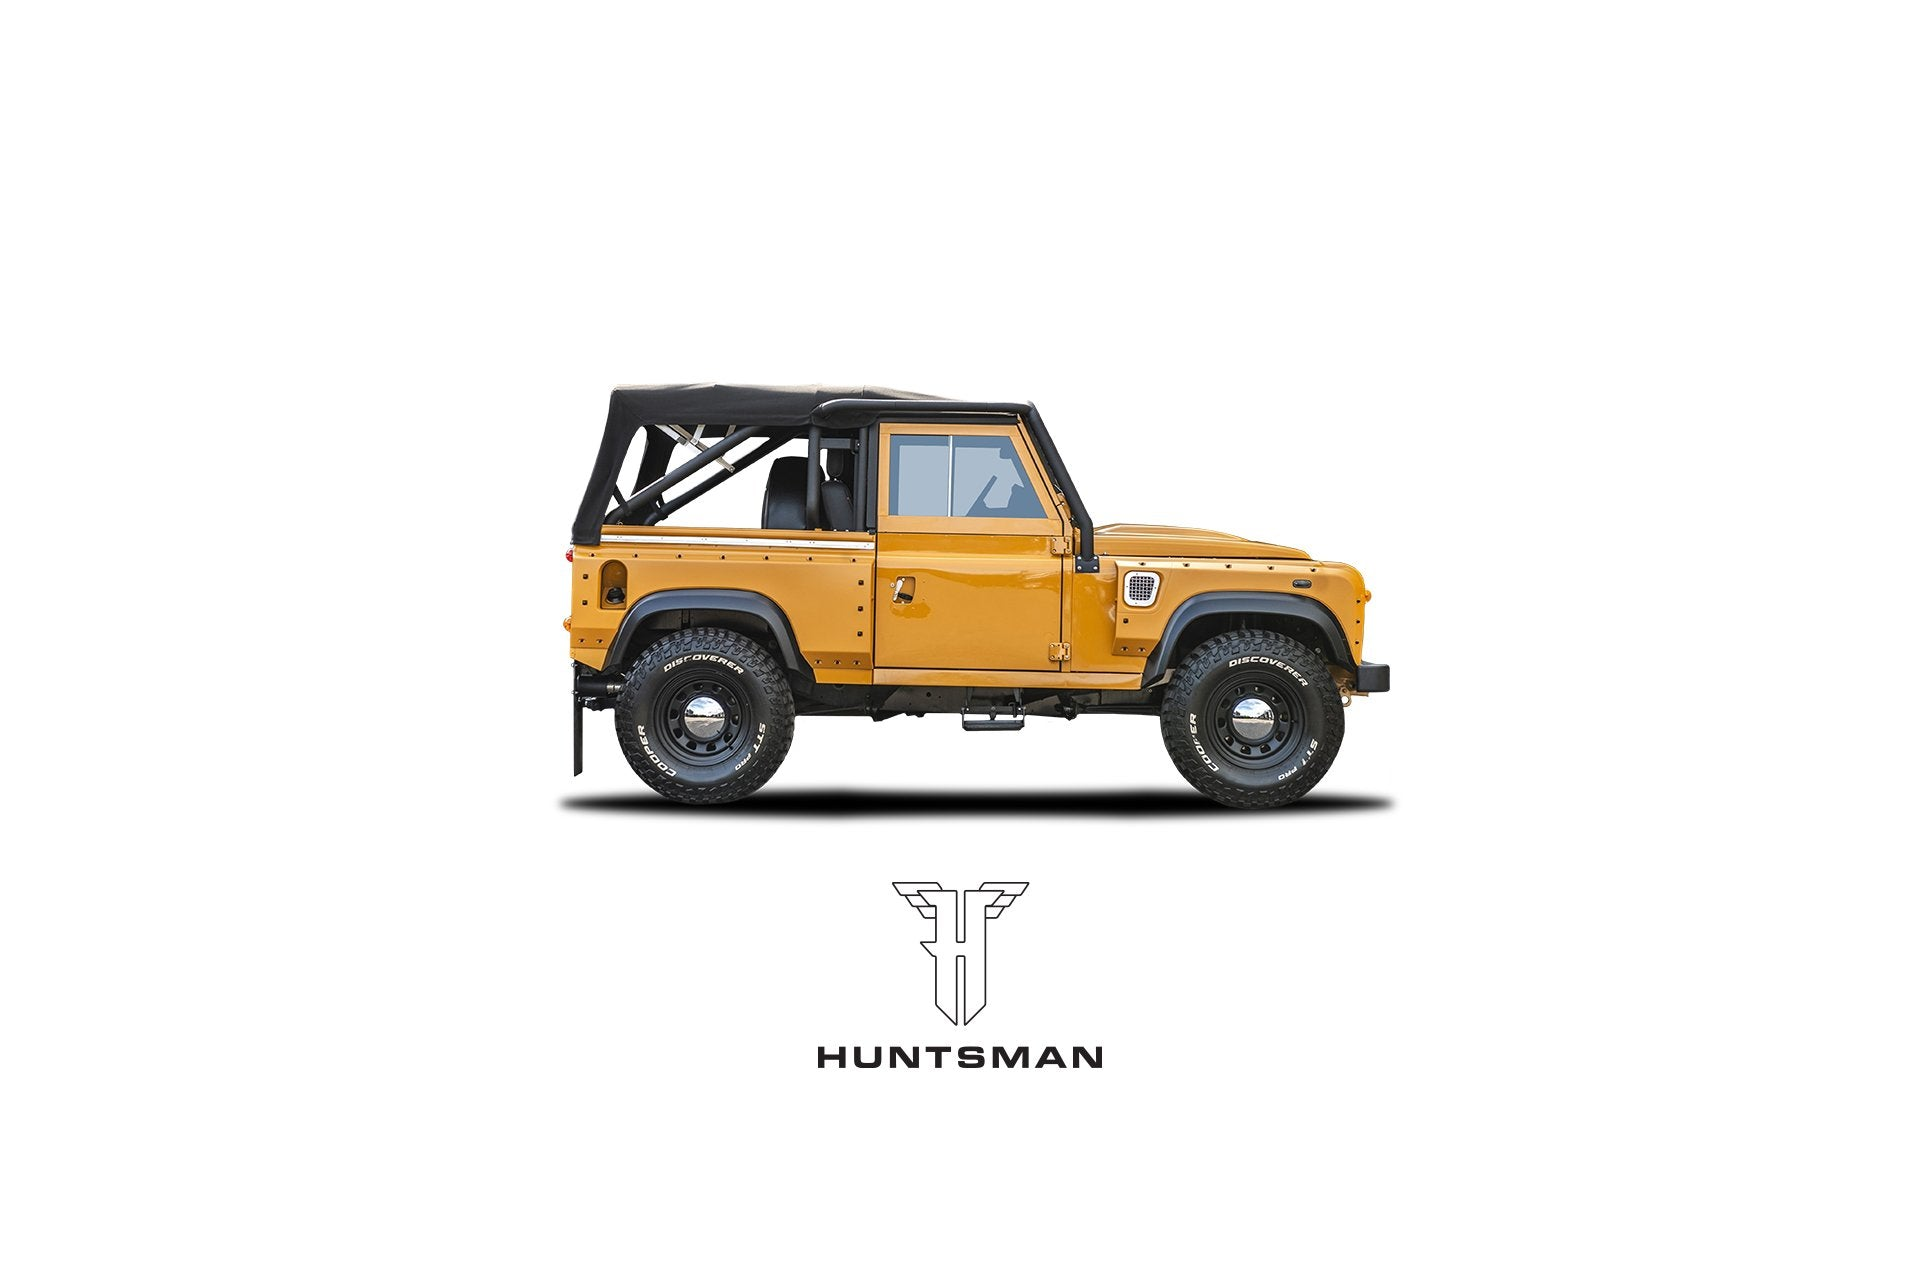 The Flying Huntsman Homage Ii by Kahn - Image 75